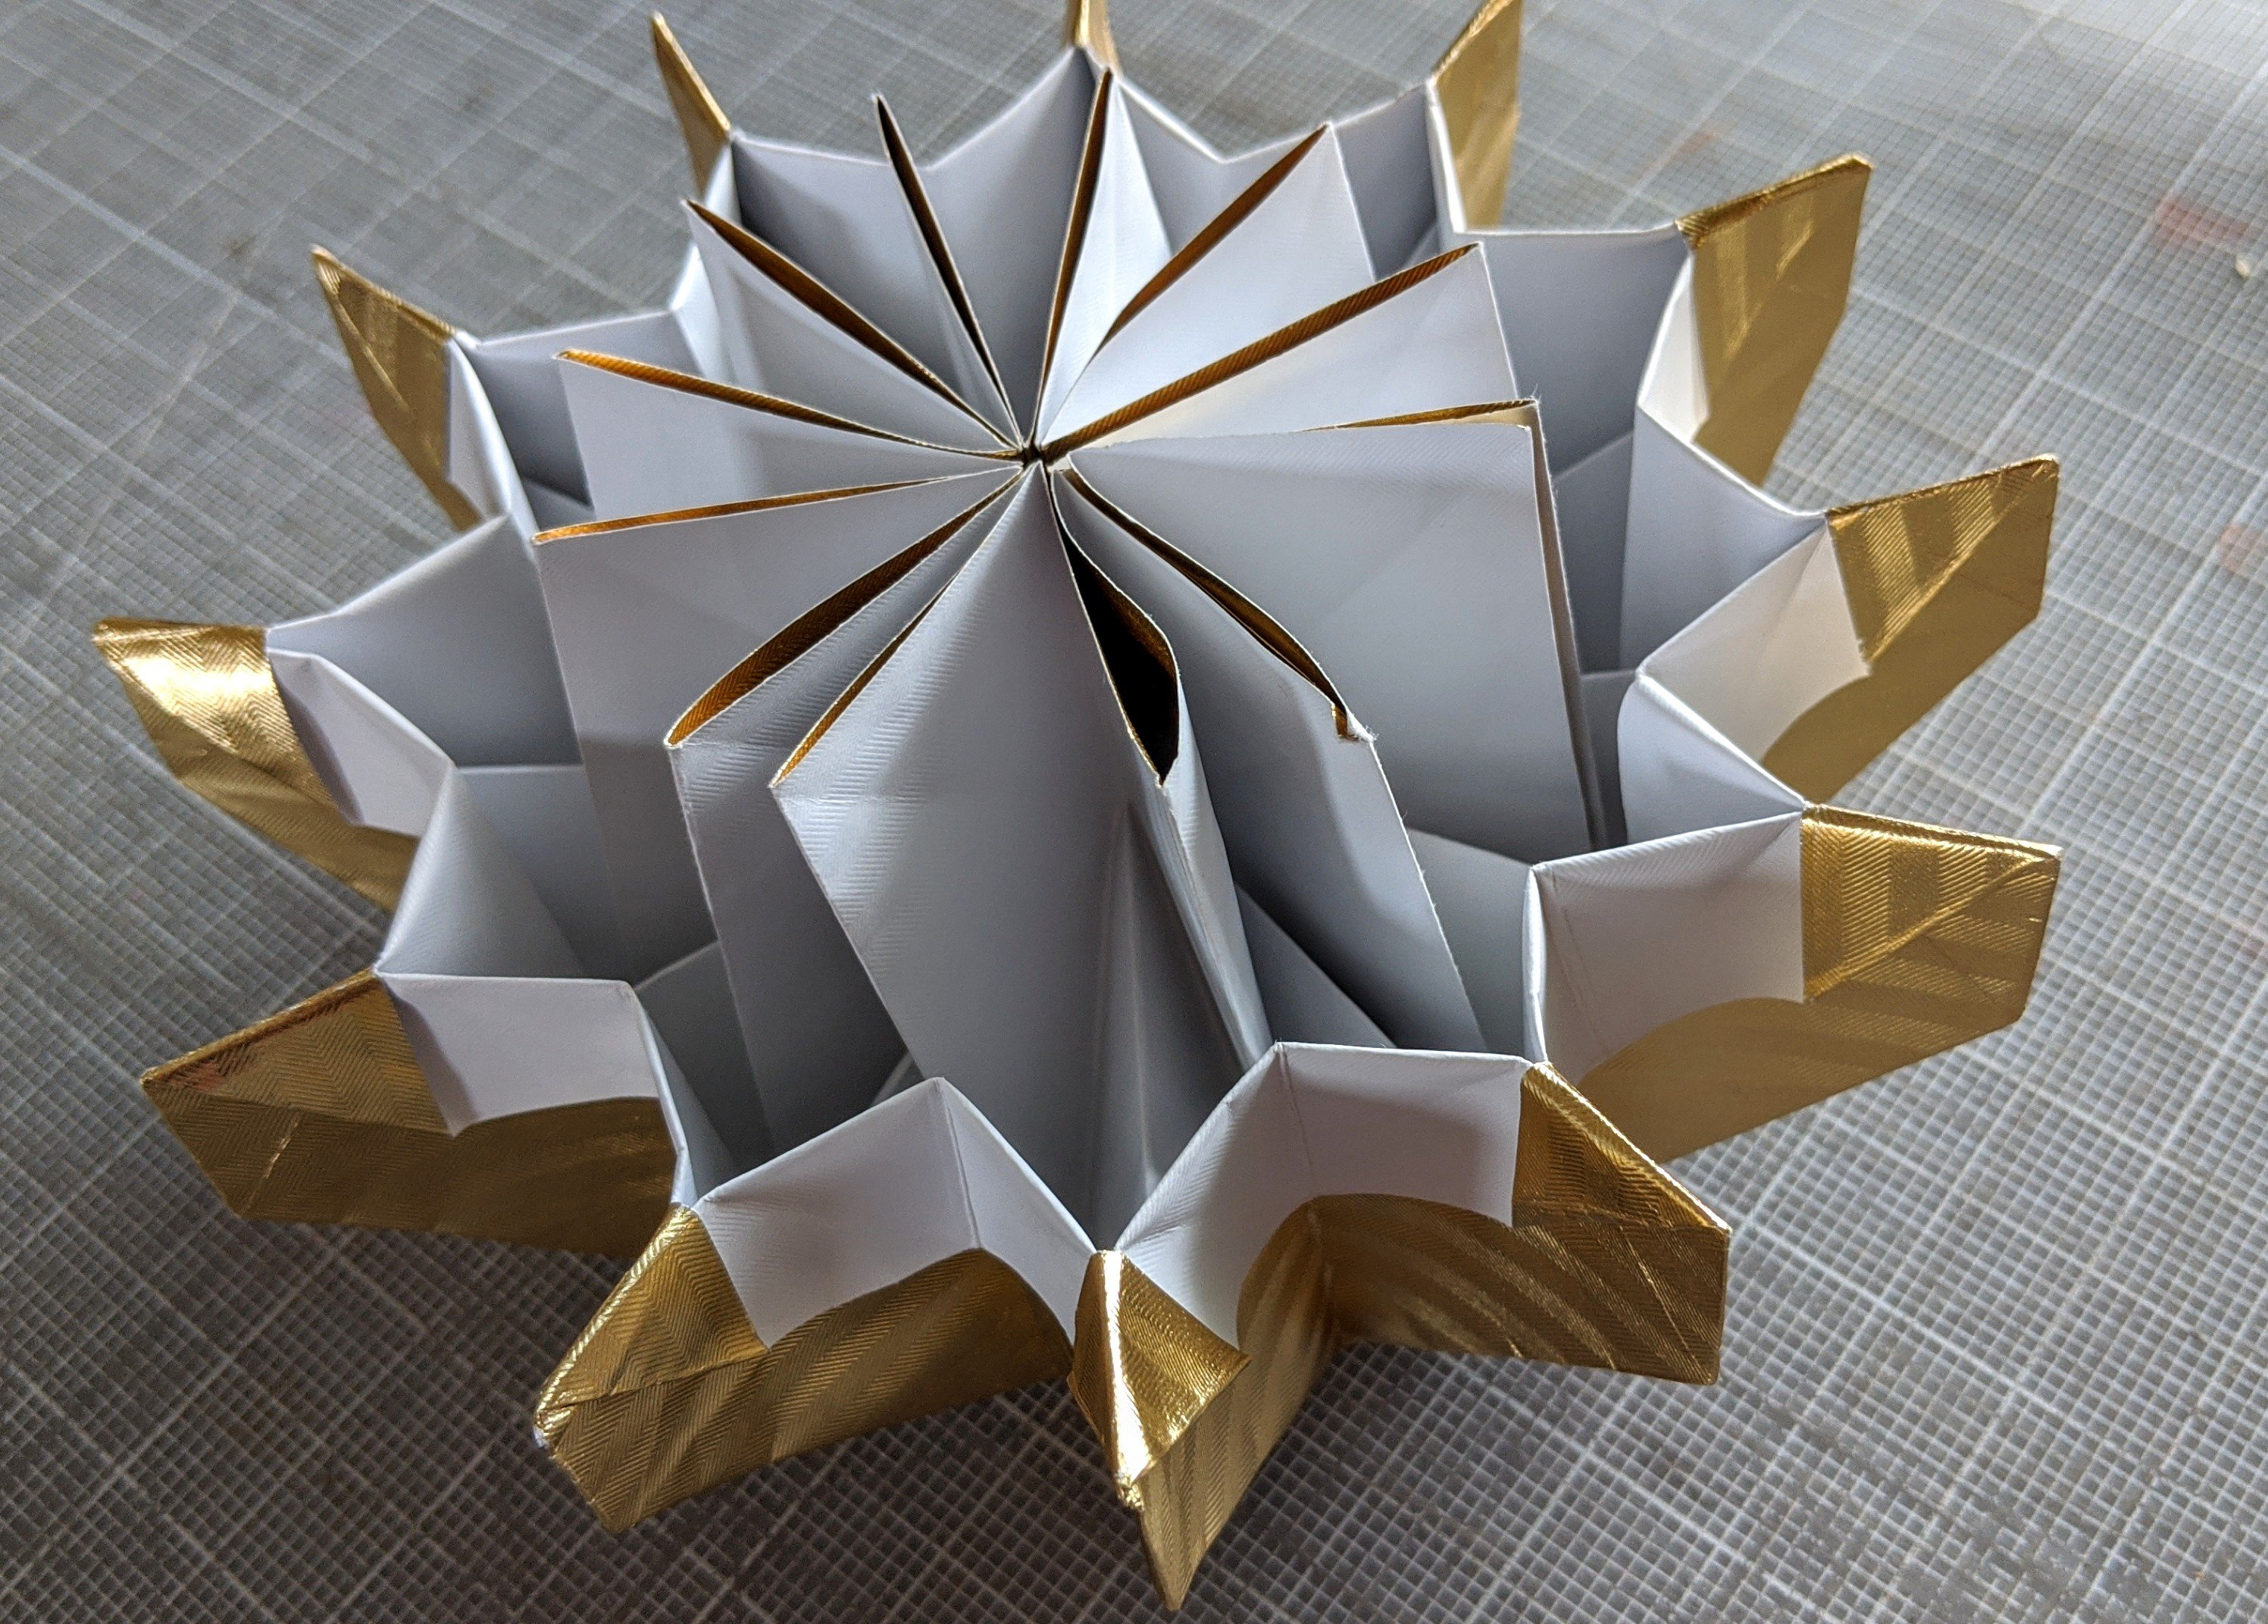 20 cool origami tutorials kids and adults will love! - It's Always ... | 2143x2993